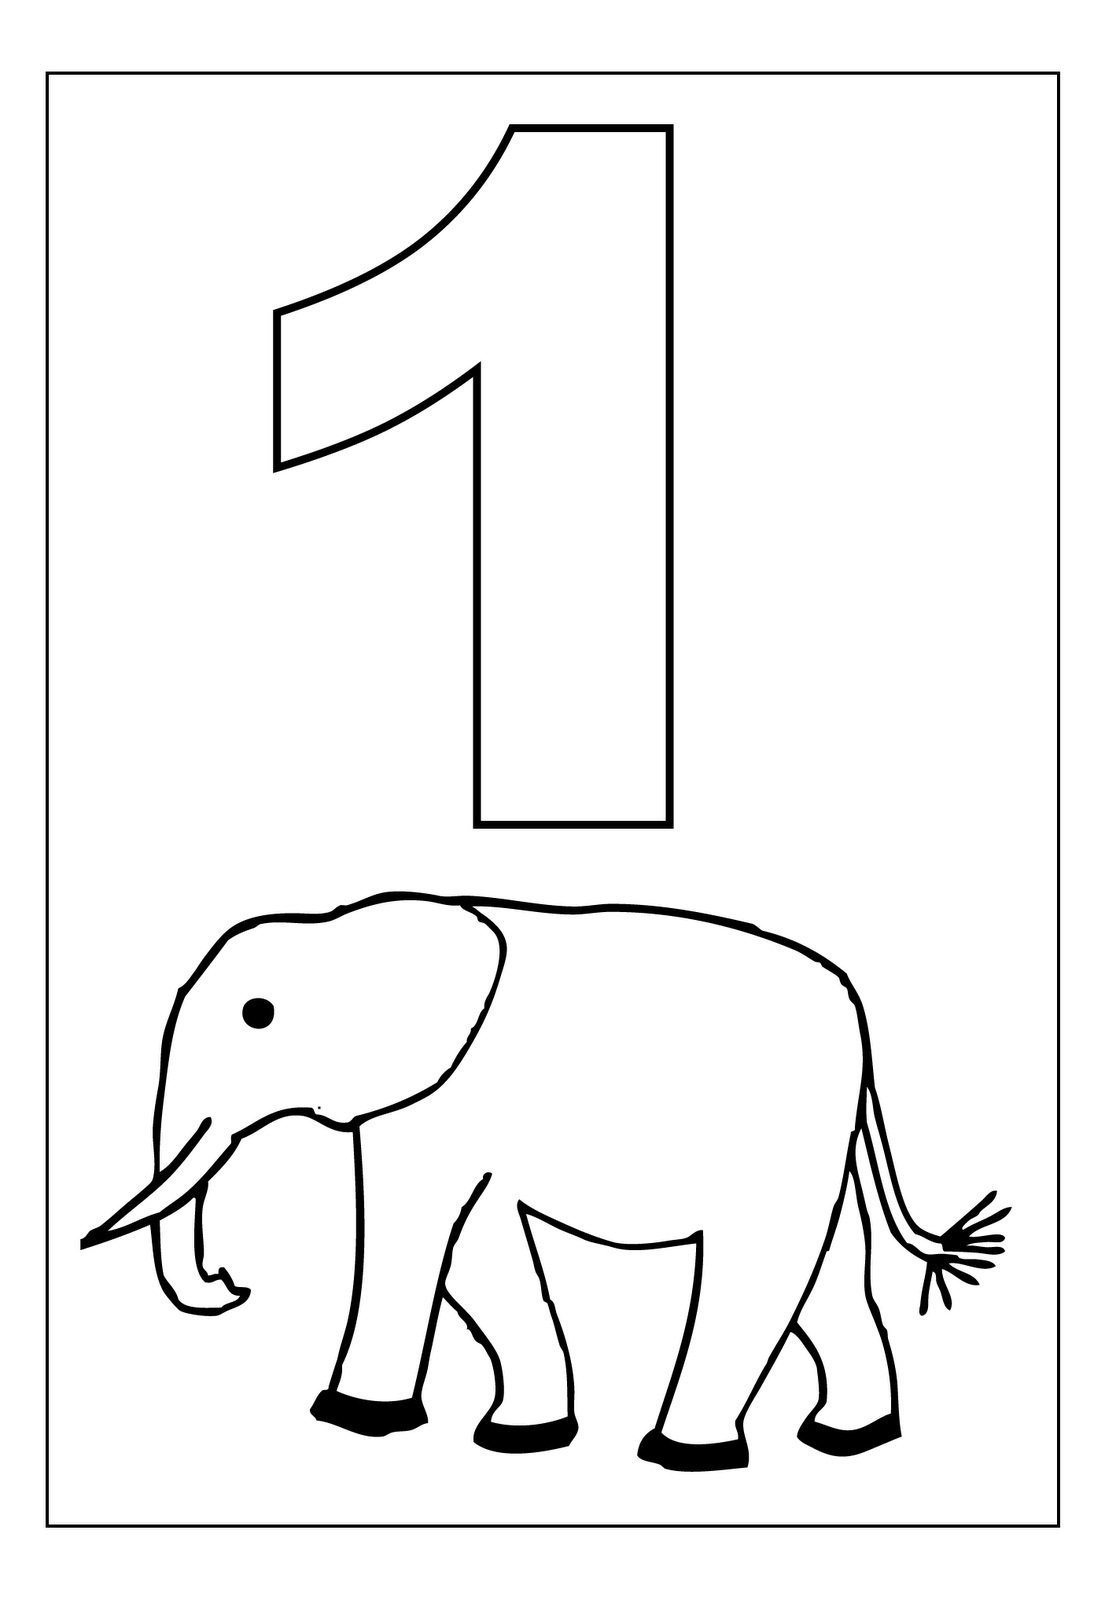 number coloring pages free printable - photo#8